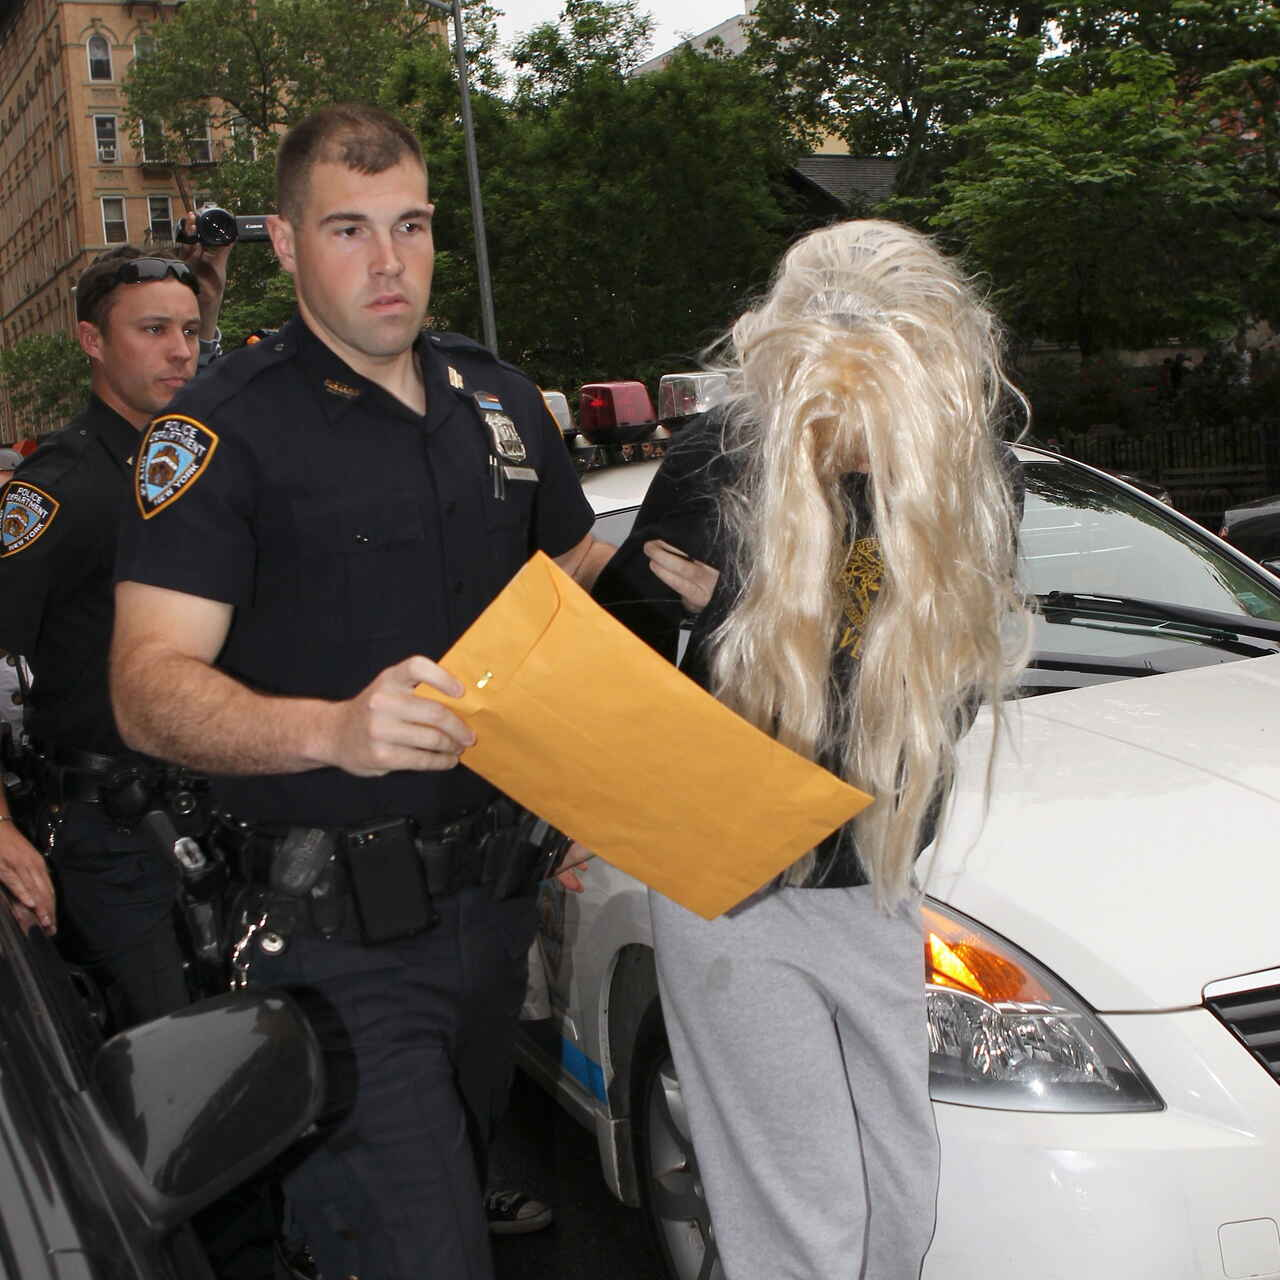 After stopping acting Amanda Bynes starred in several scandals.